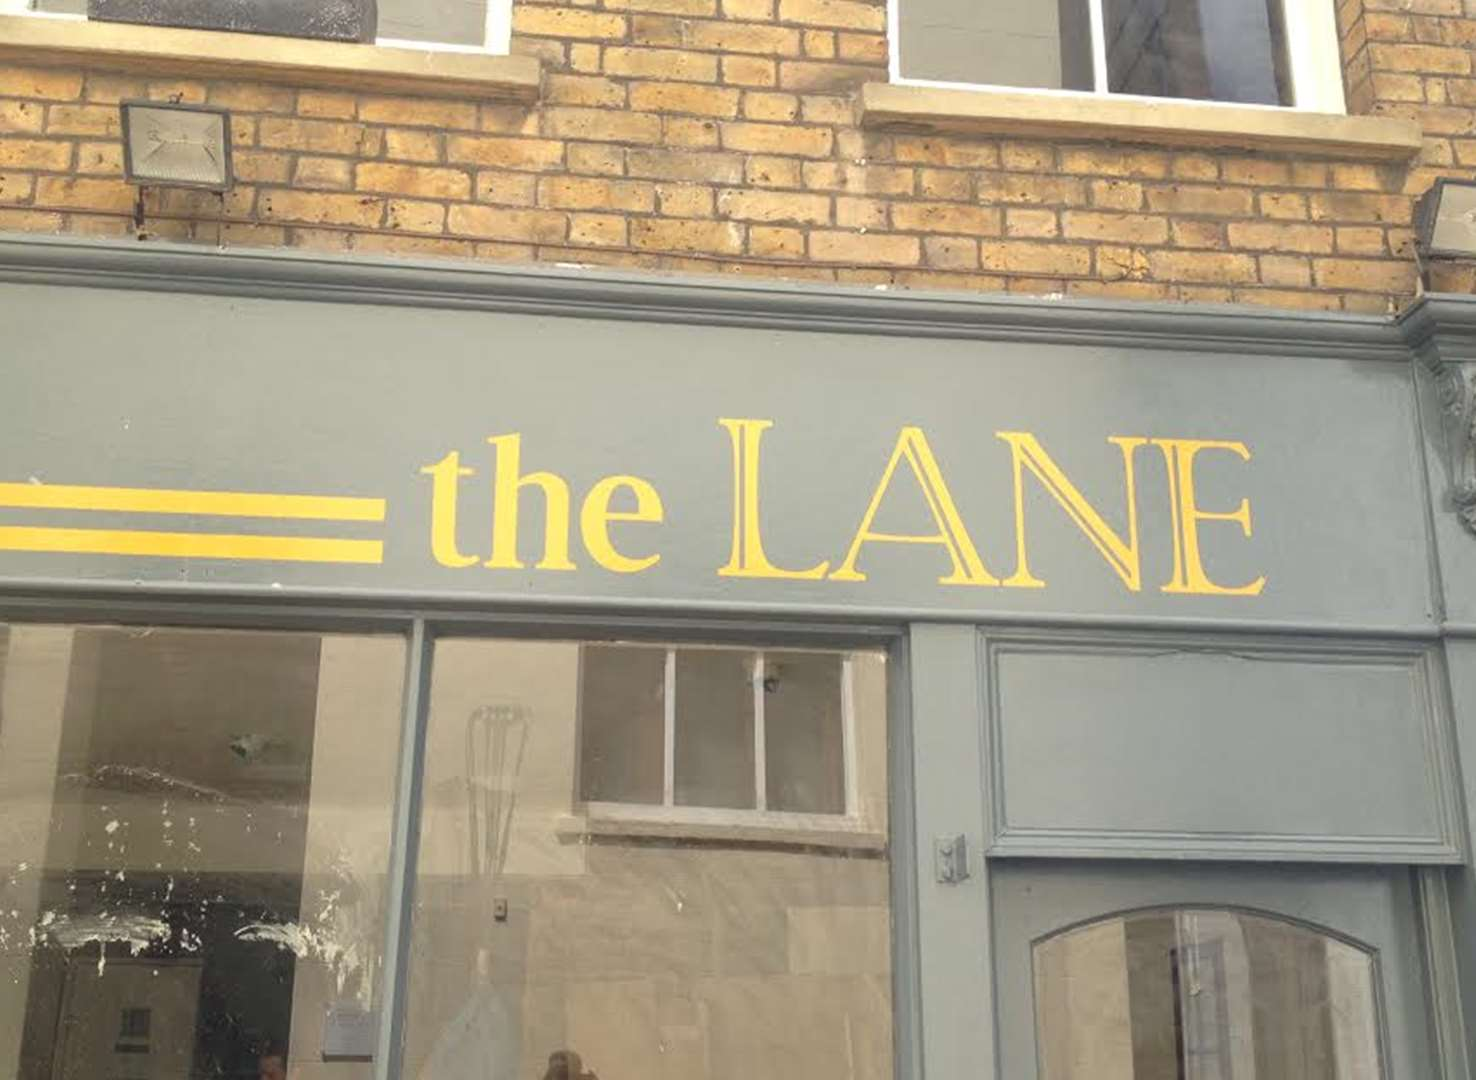 The Lane - a new addition to Deal